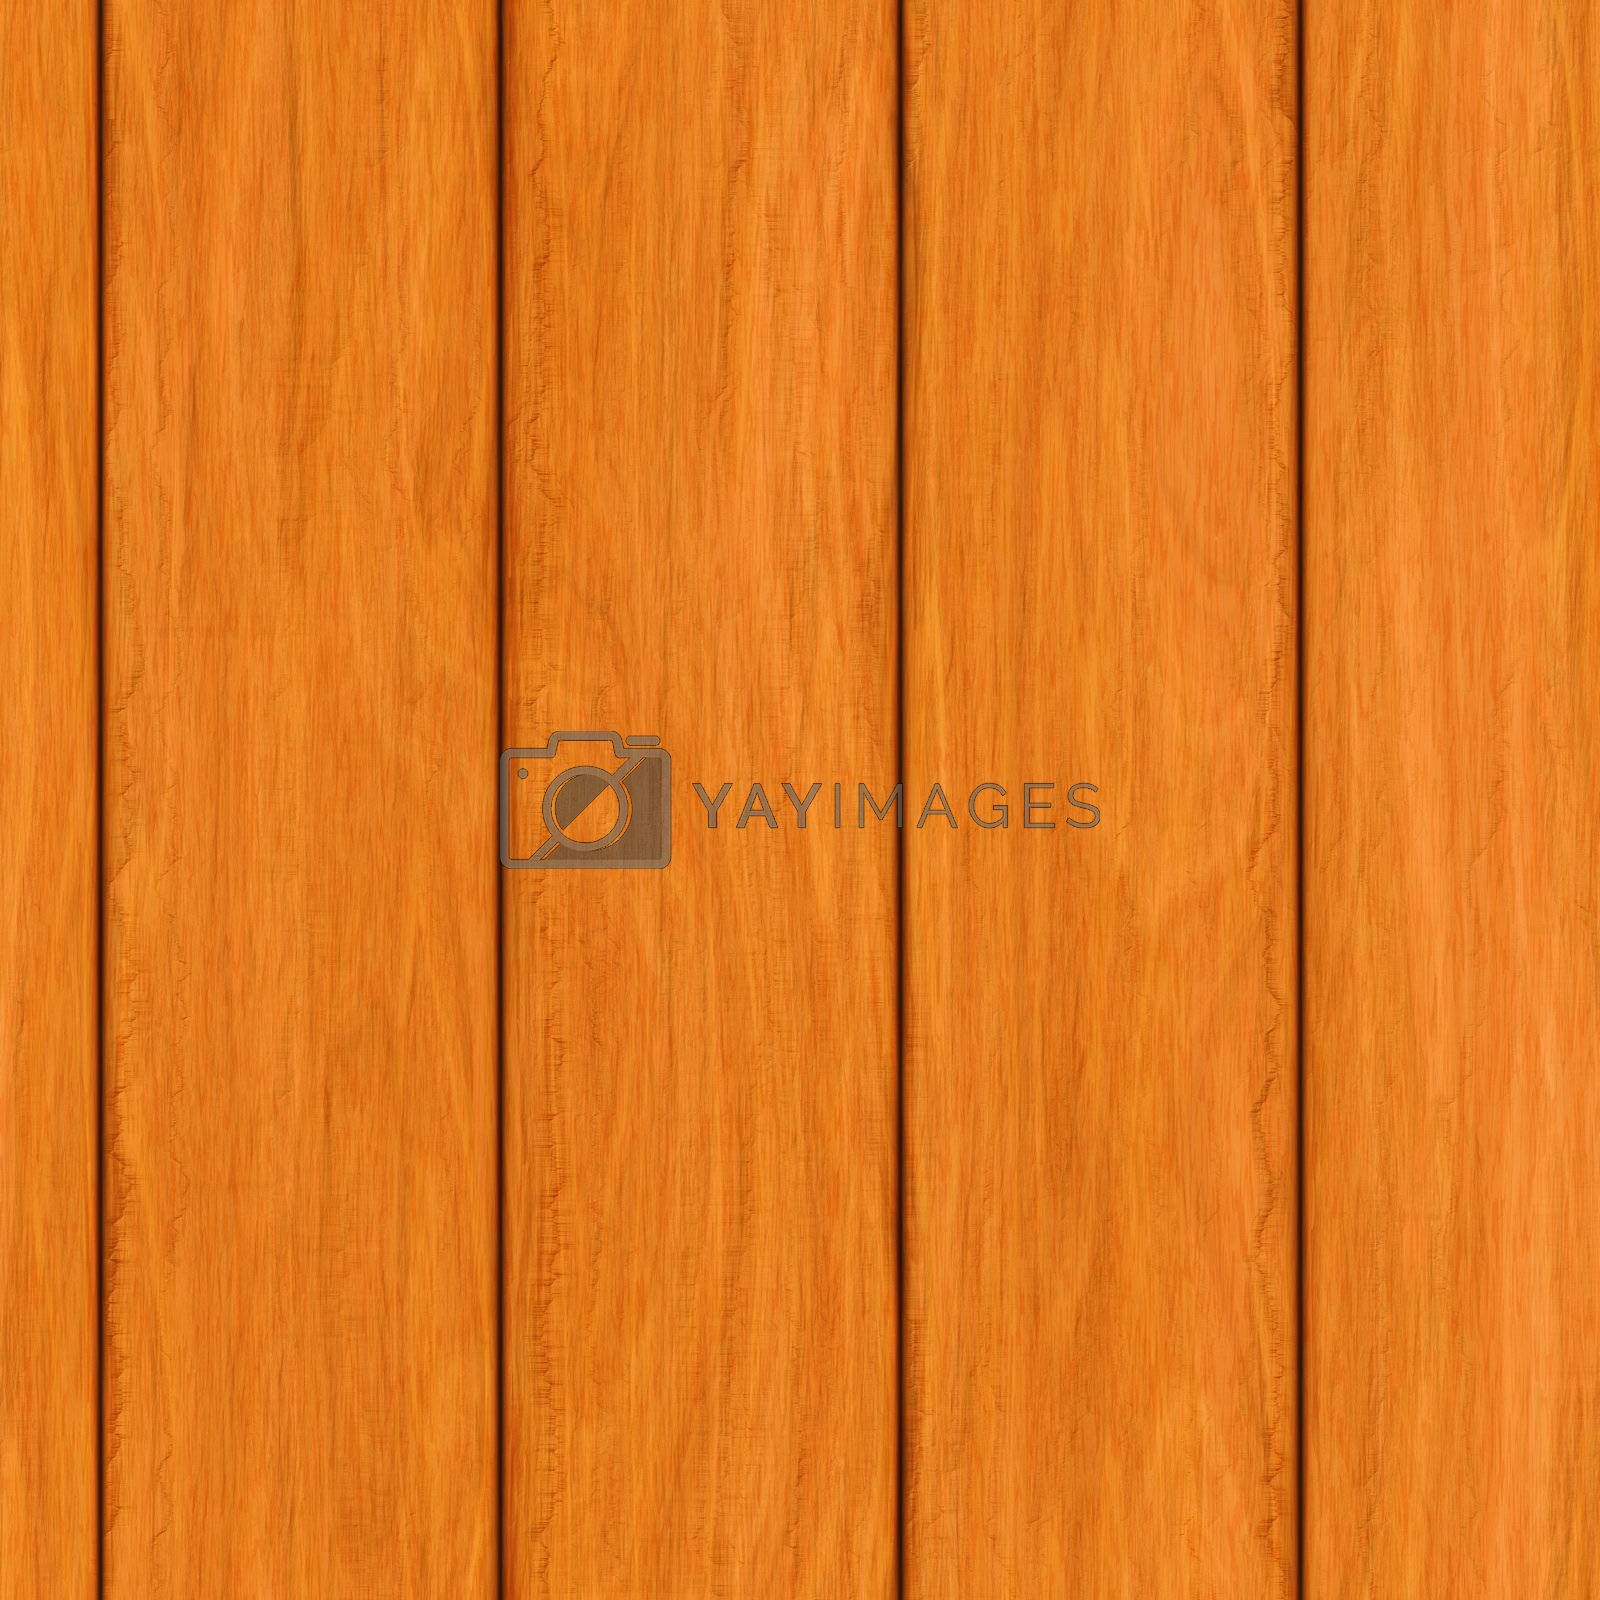 Wooden boards texture that tiles seamlessly as a pattern.